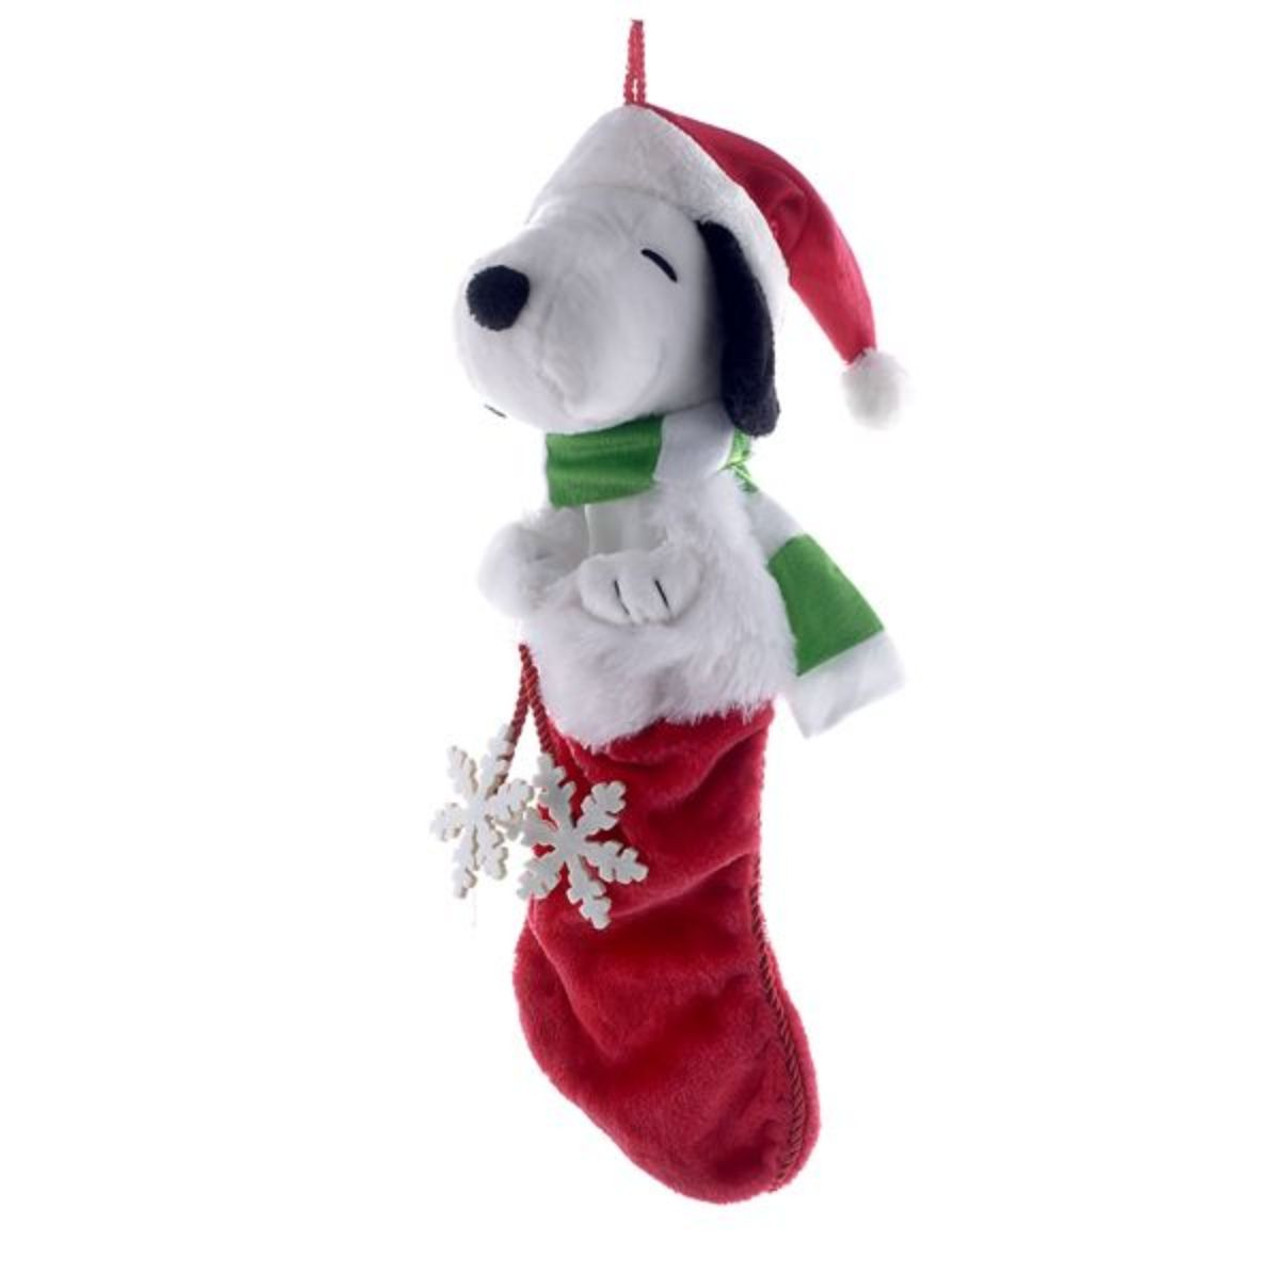 peanuts snoopy with snowflake christmas stocking 21 13383409 - Snoopy Christmas Stocking